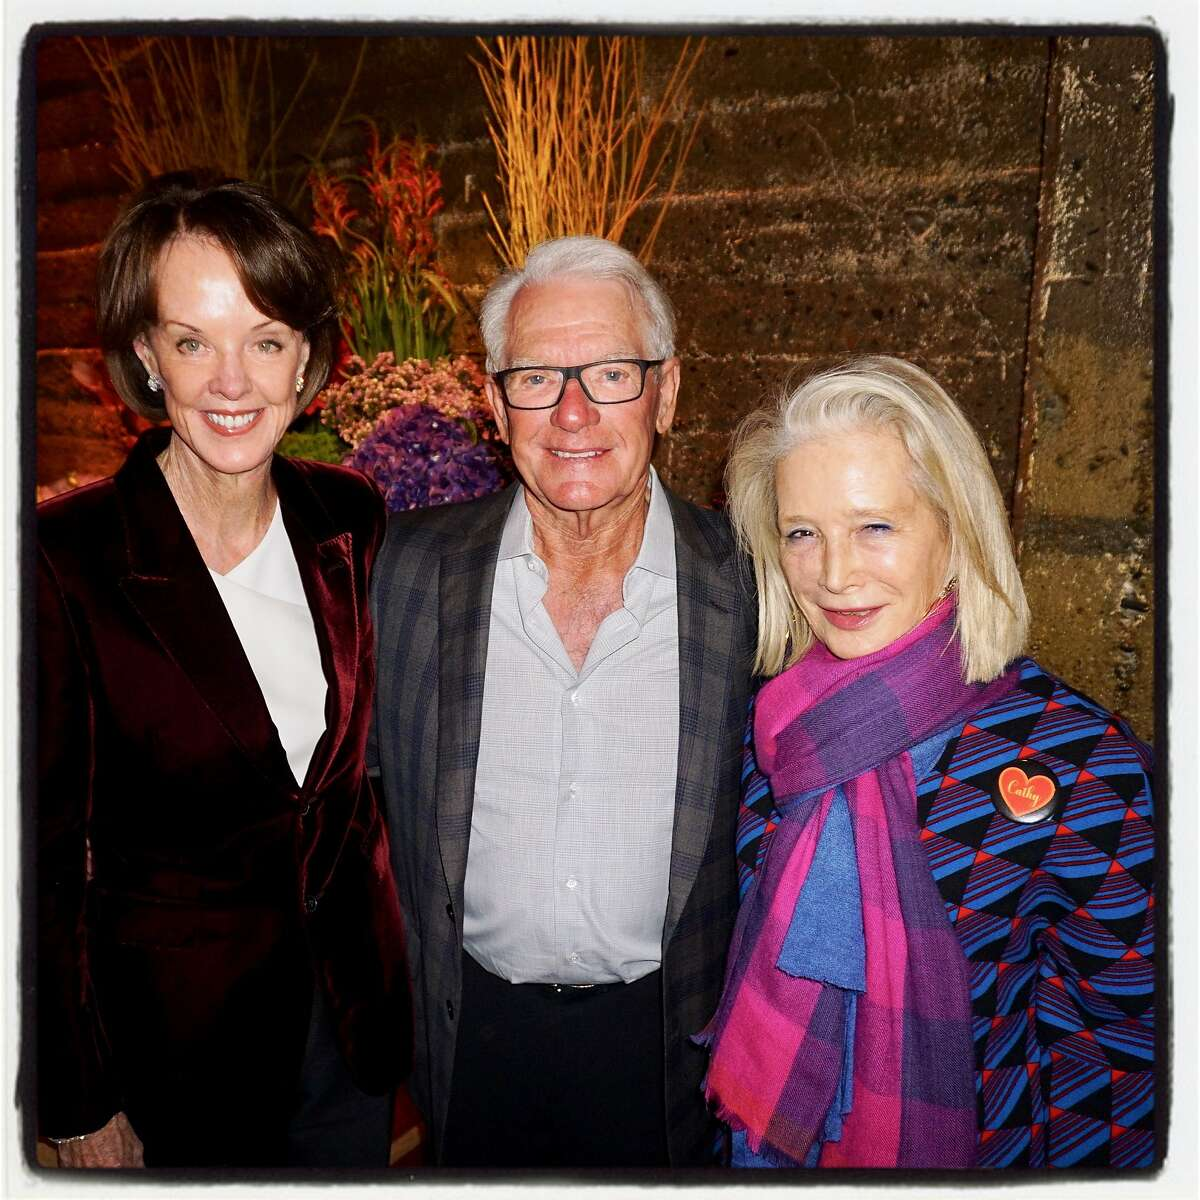 Helen (left) and Chuck Schwab with Fog honorary chair Mimi Haas at the benefactor party she hosted at the Stanlee Gatti Atelier in January 2017.